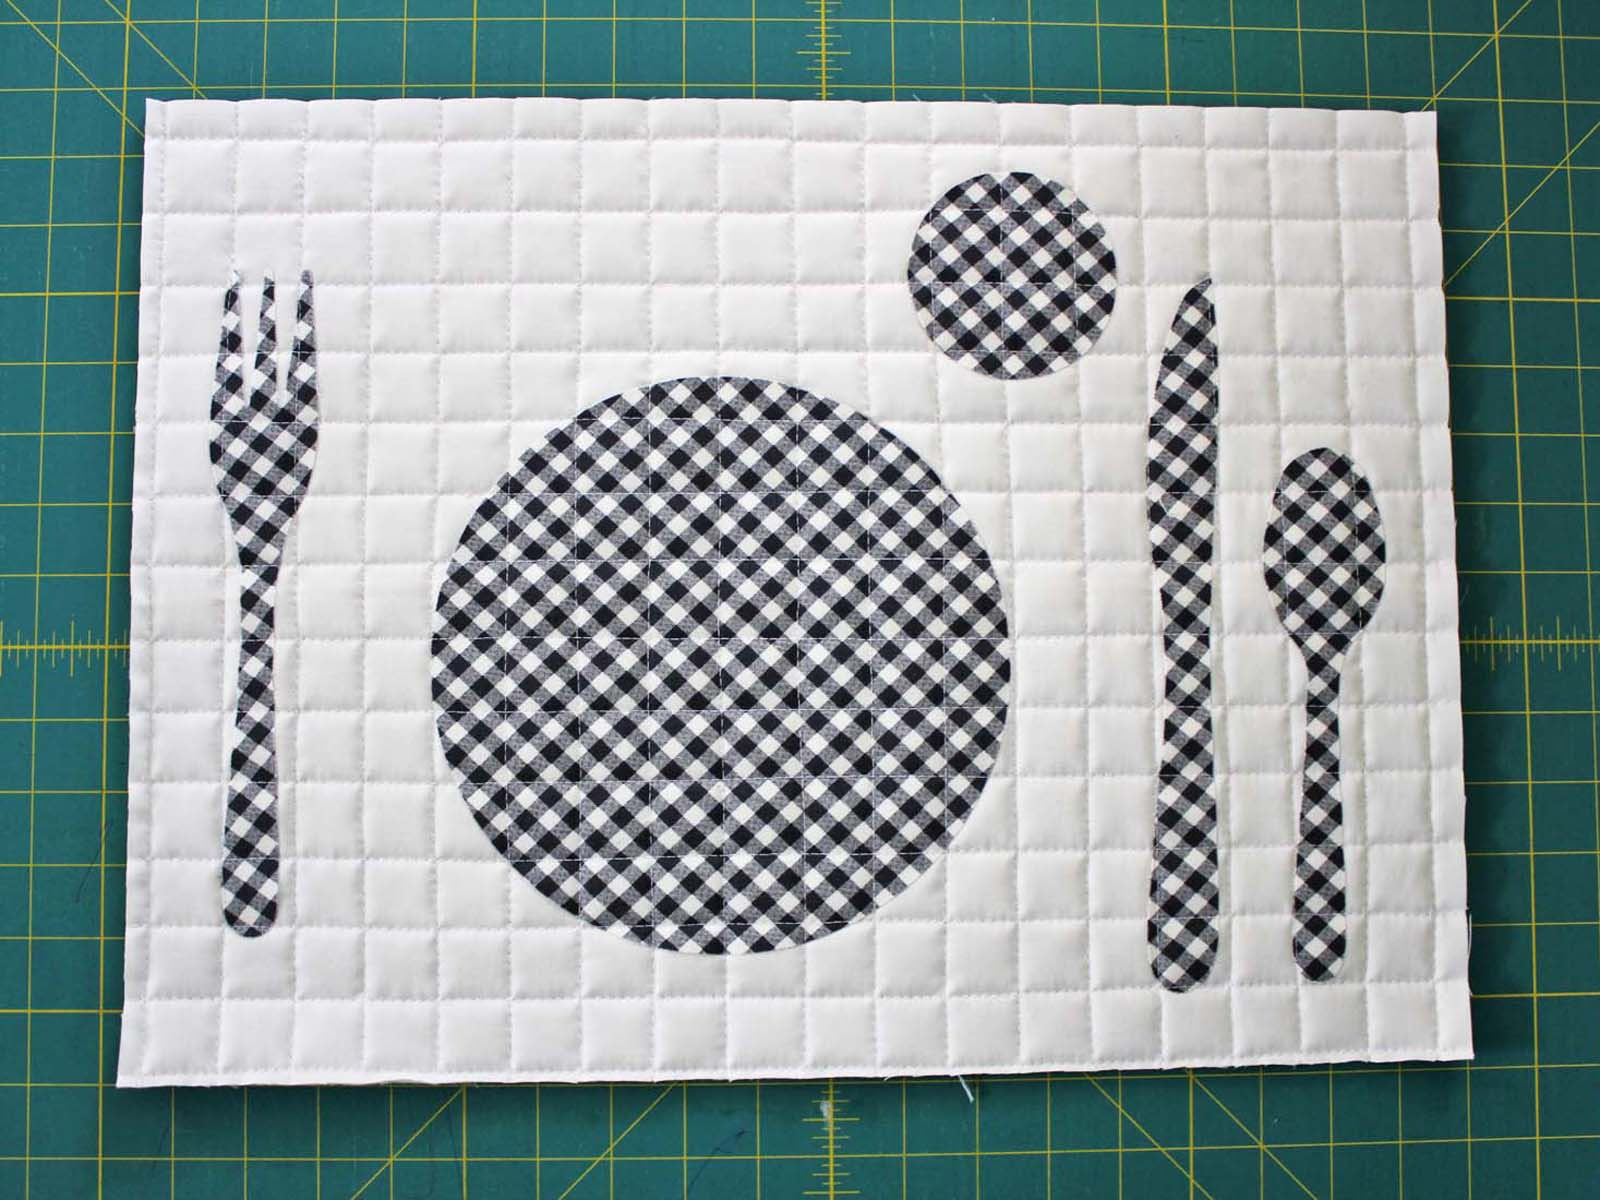 quilted and trimmed table setting placemat